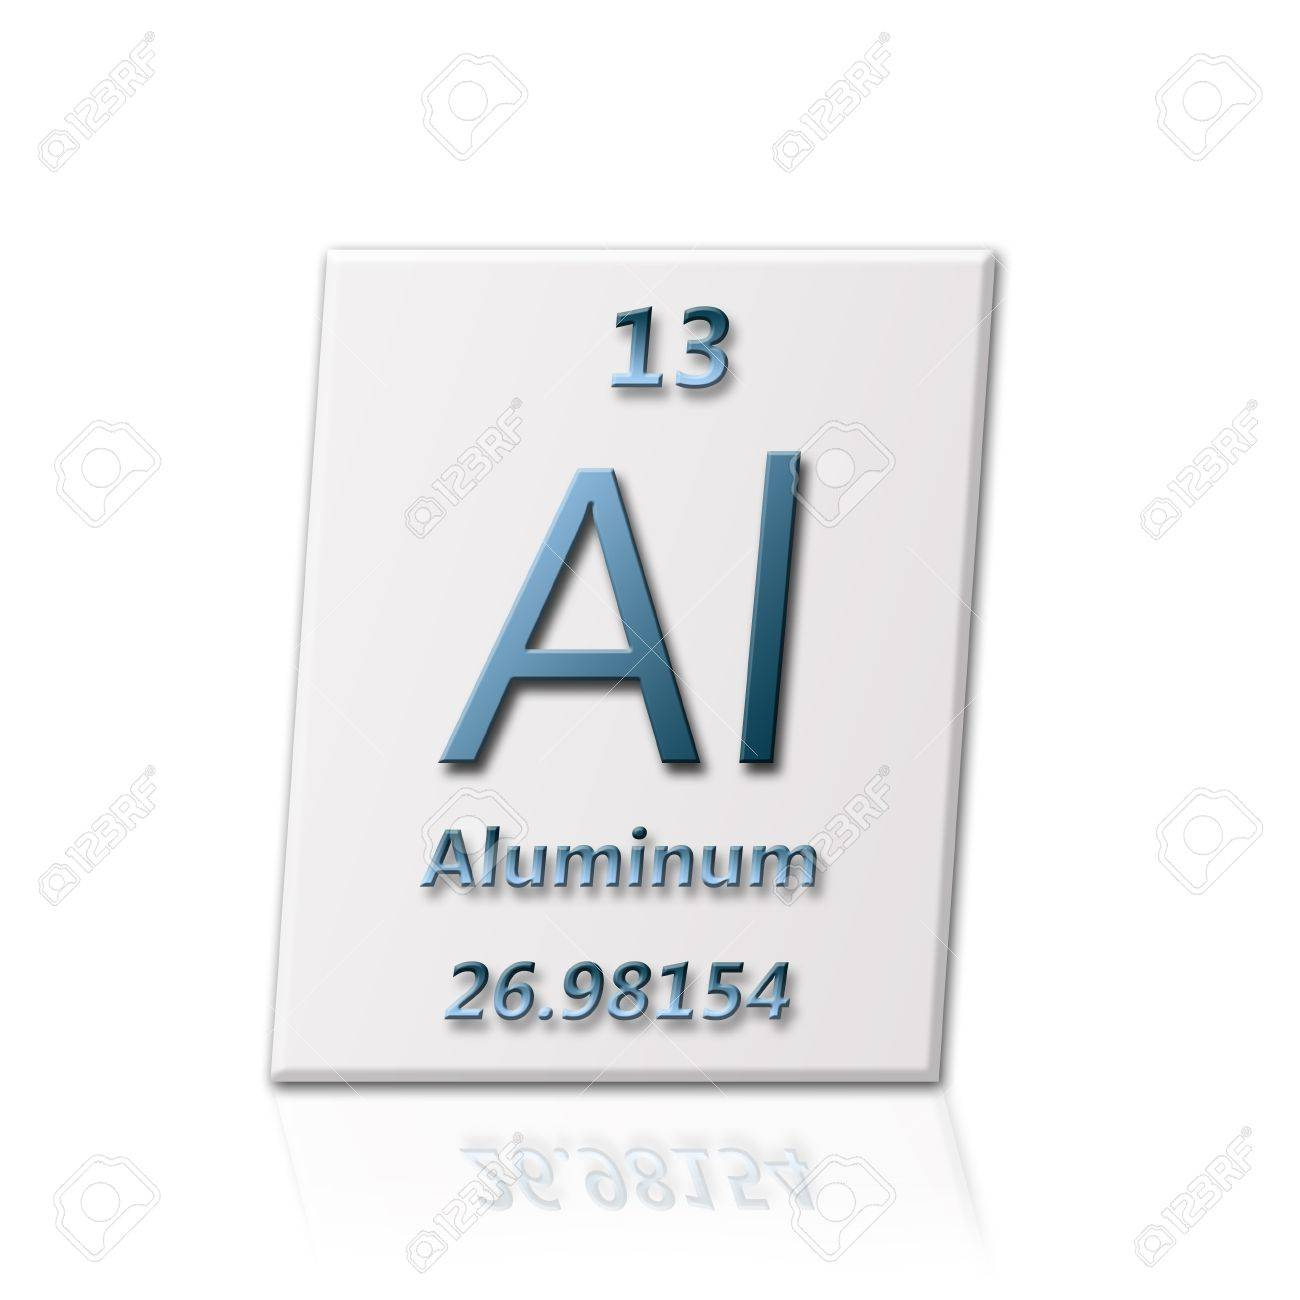 There Is A Chemical Element Aluminum With All Information About